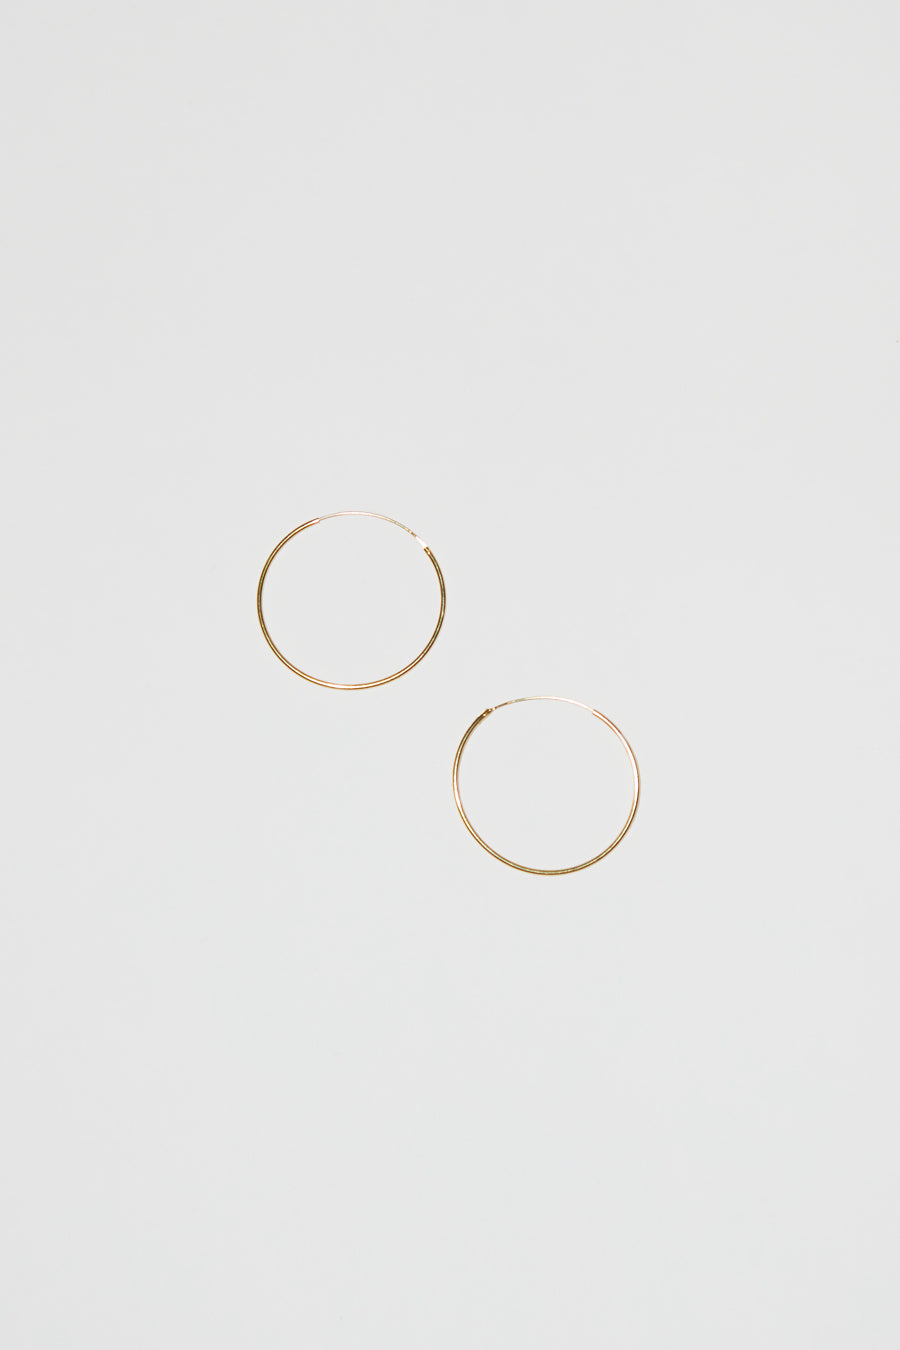 Ninfa Balance Snake Large Hoop Earrings